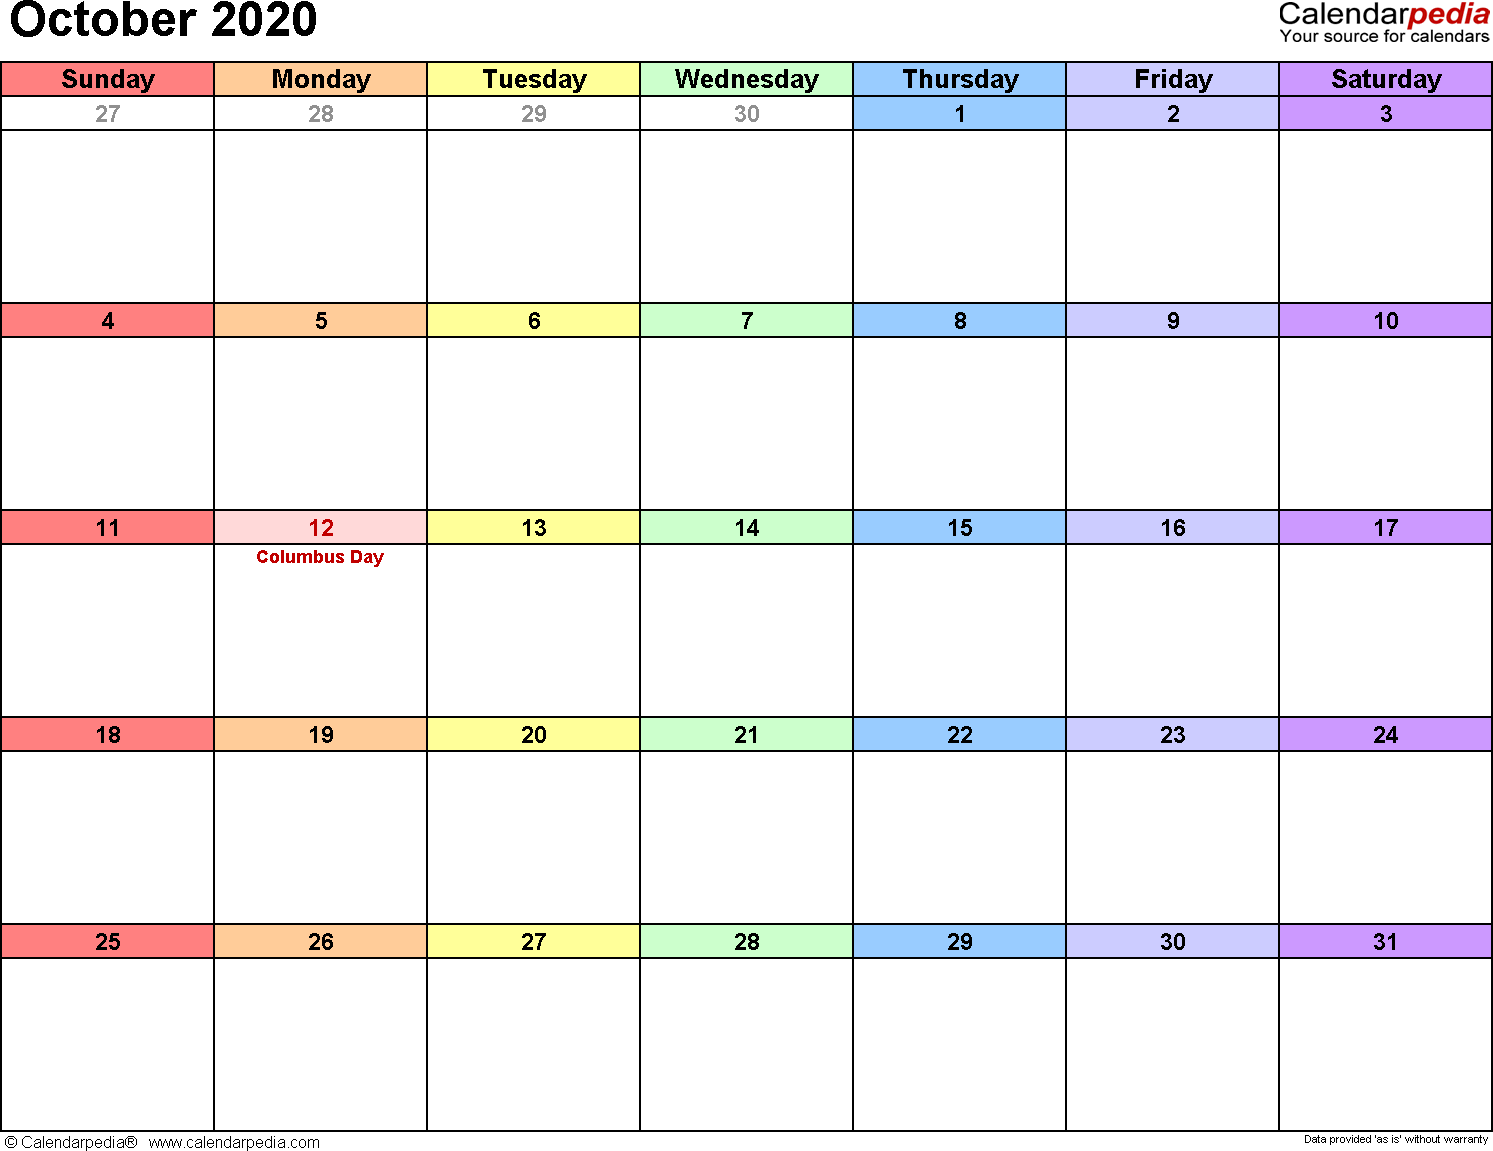 October 2020 Calendar Printable October 2020 Calendars for Word, Excel & PDF